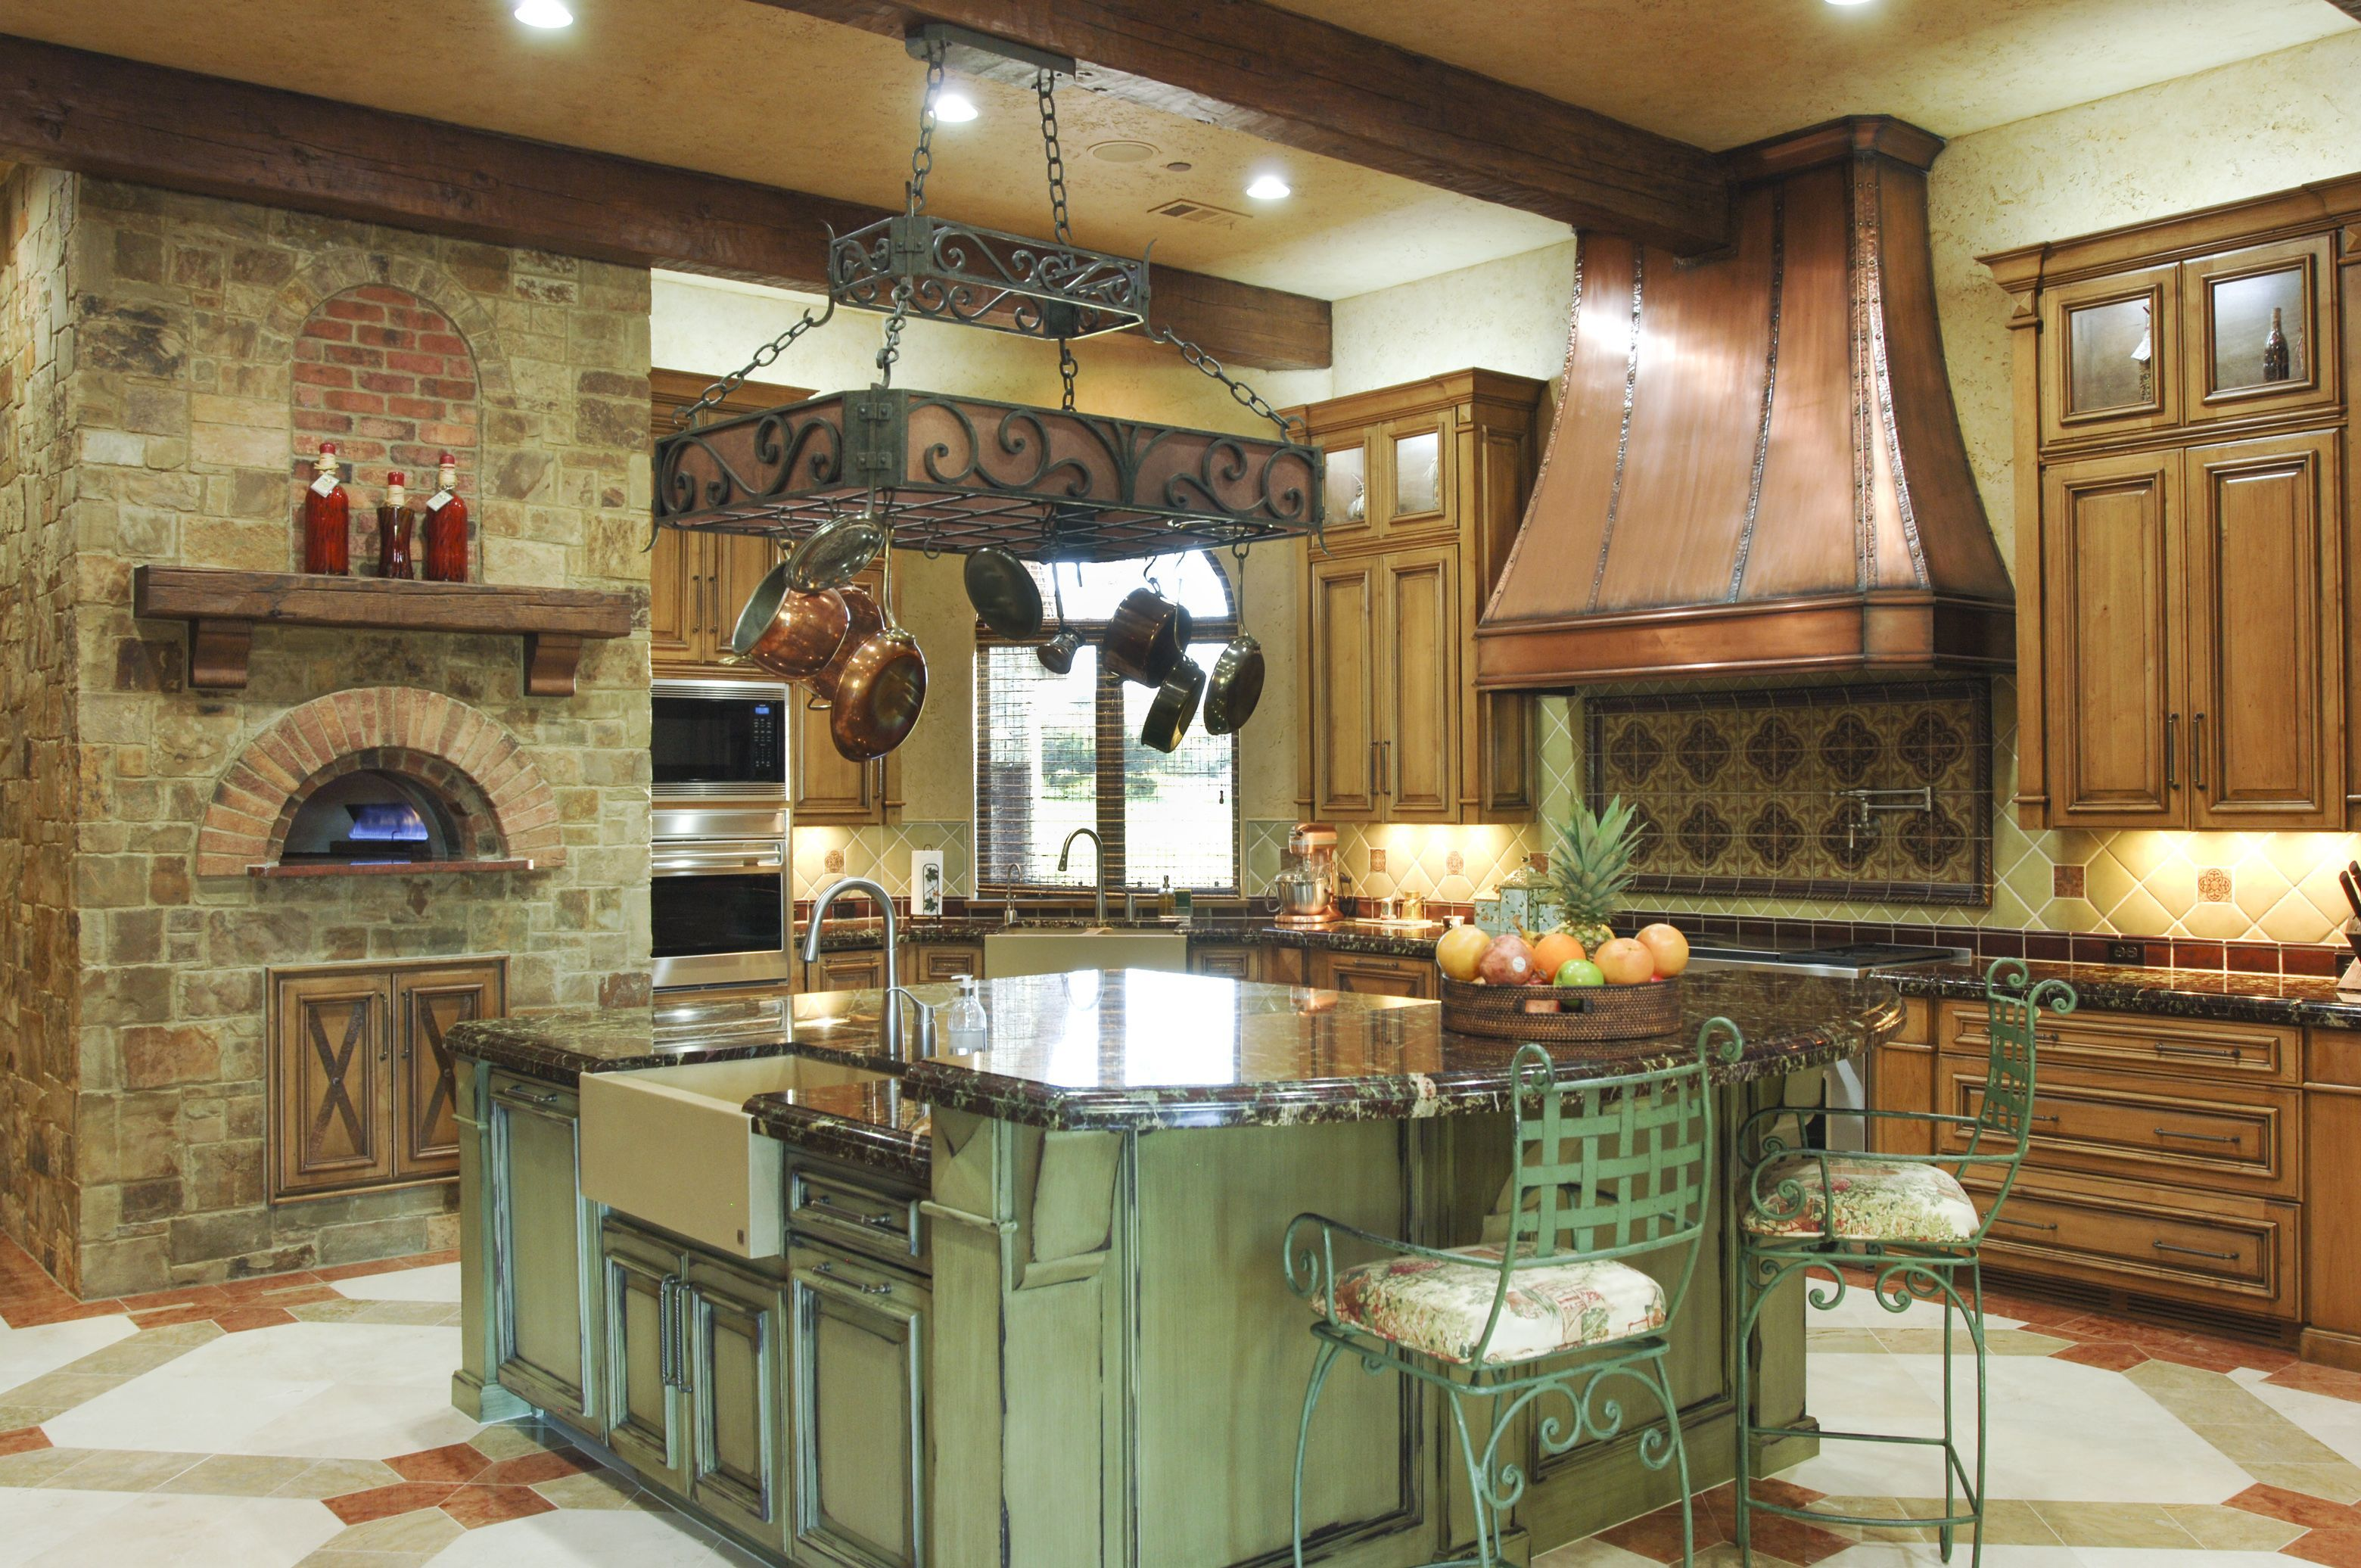 Kitchen With Pizza Oven, Copper Vent Hood, Wolfe Range, Hand Hewn Beams,